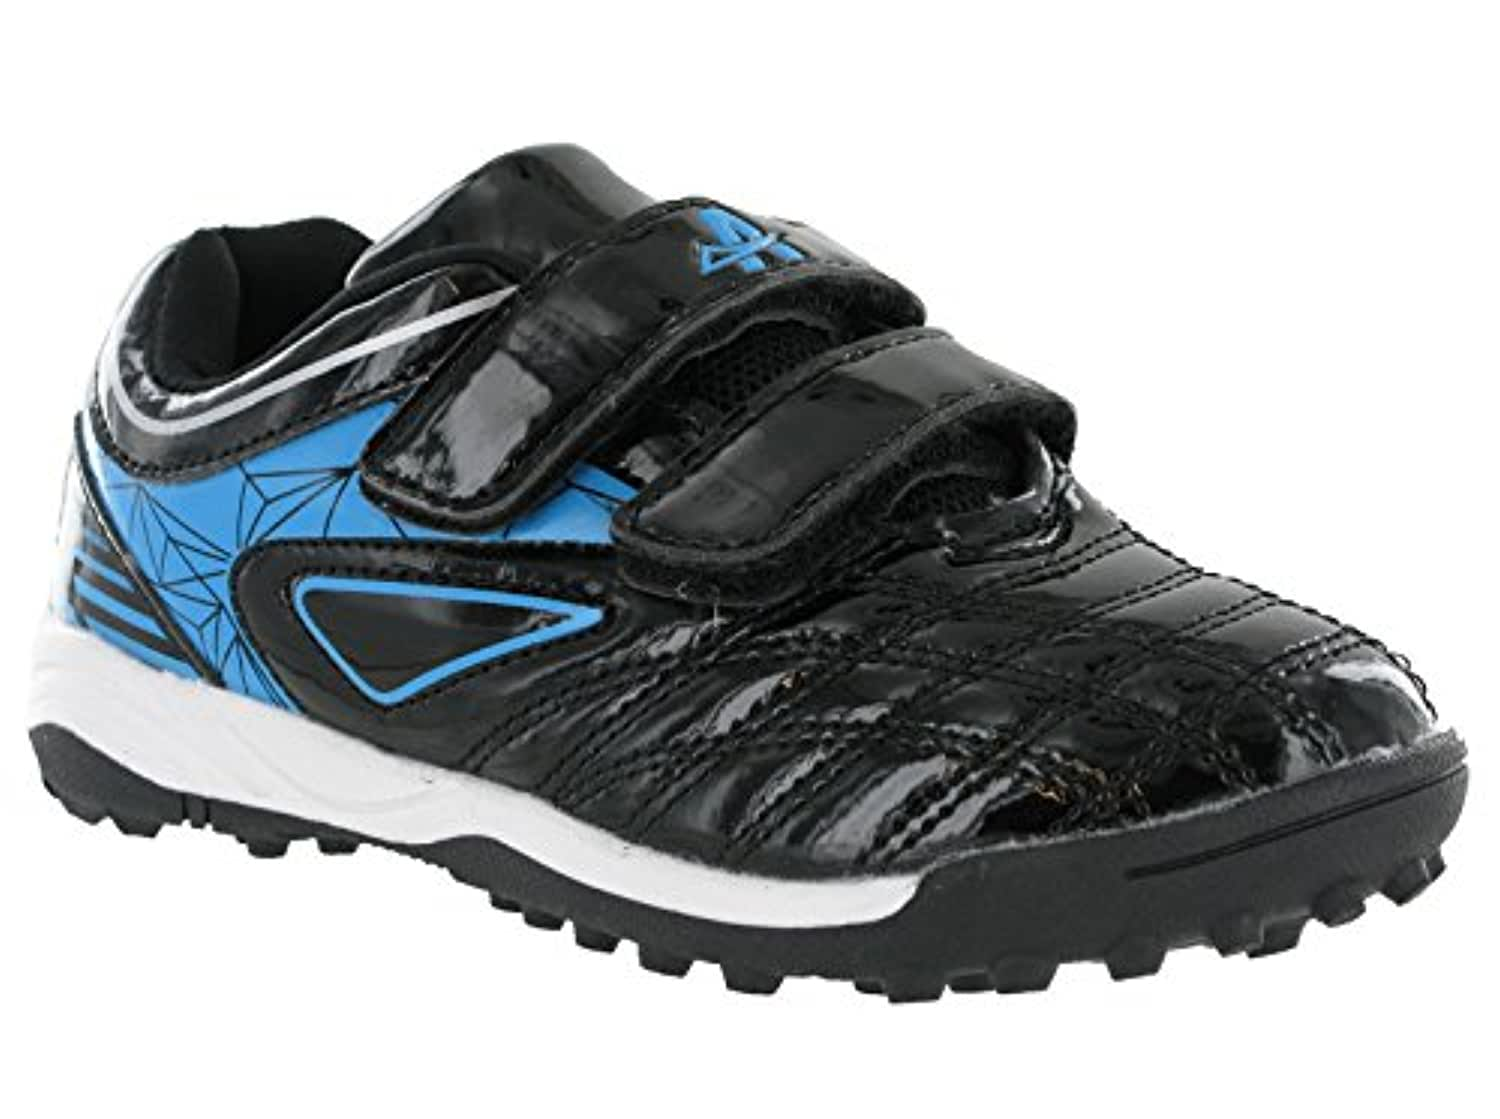 Boys Kids Football Astro Velcro Strap Indoor Outdoor Sports Unisex Shoes Trainers (UK 2, Black / Blue)